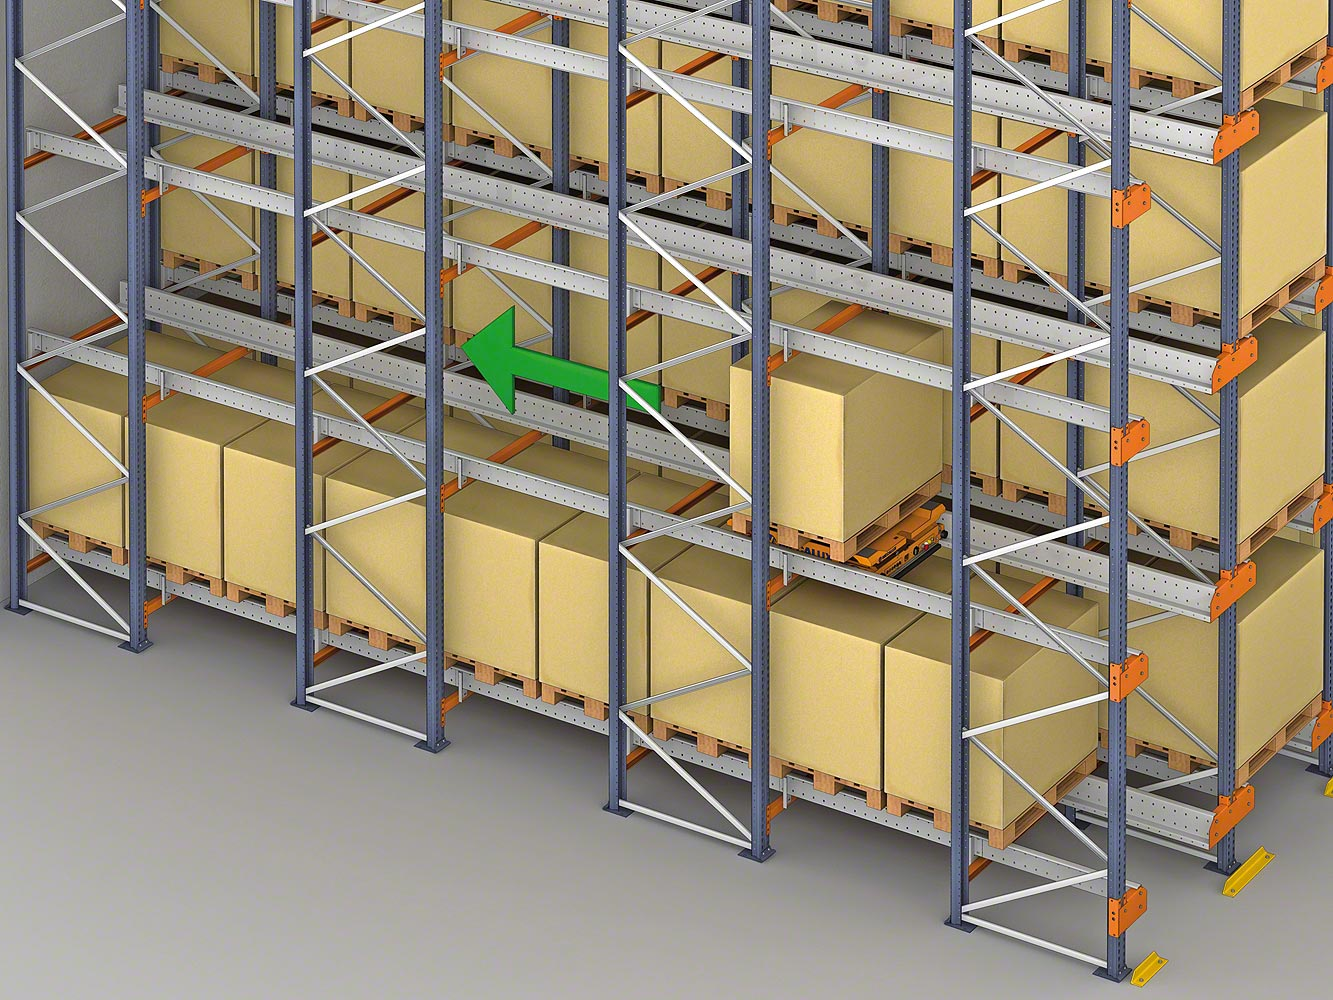 The Pallet Shuttle slides the pallets horizontally to the nearest available space